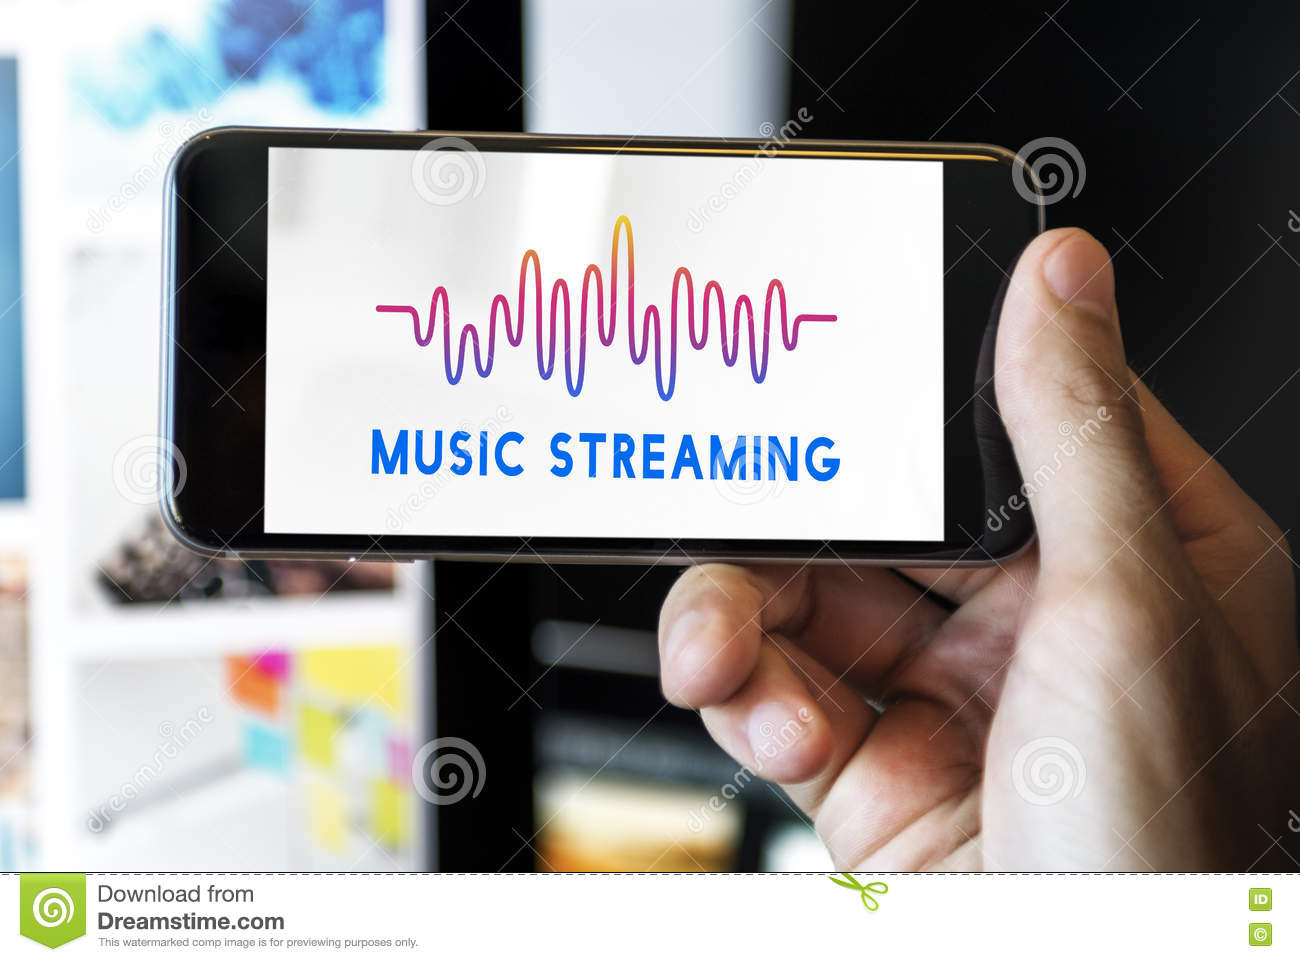 online-music-audio-music-streaming-wave-graphic-concept-mobile-device-81515185.jpg